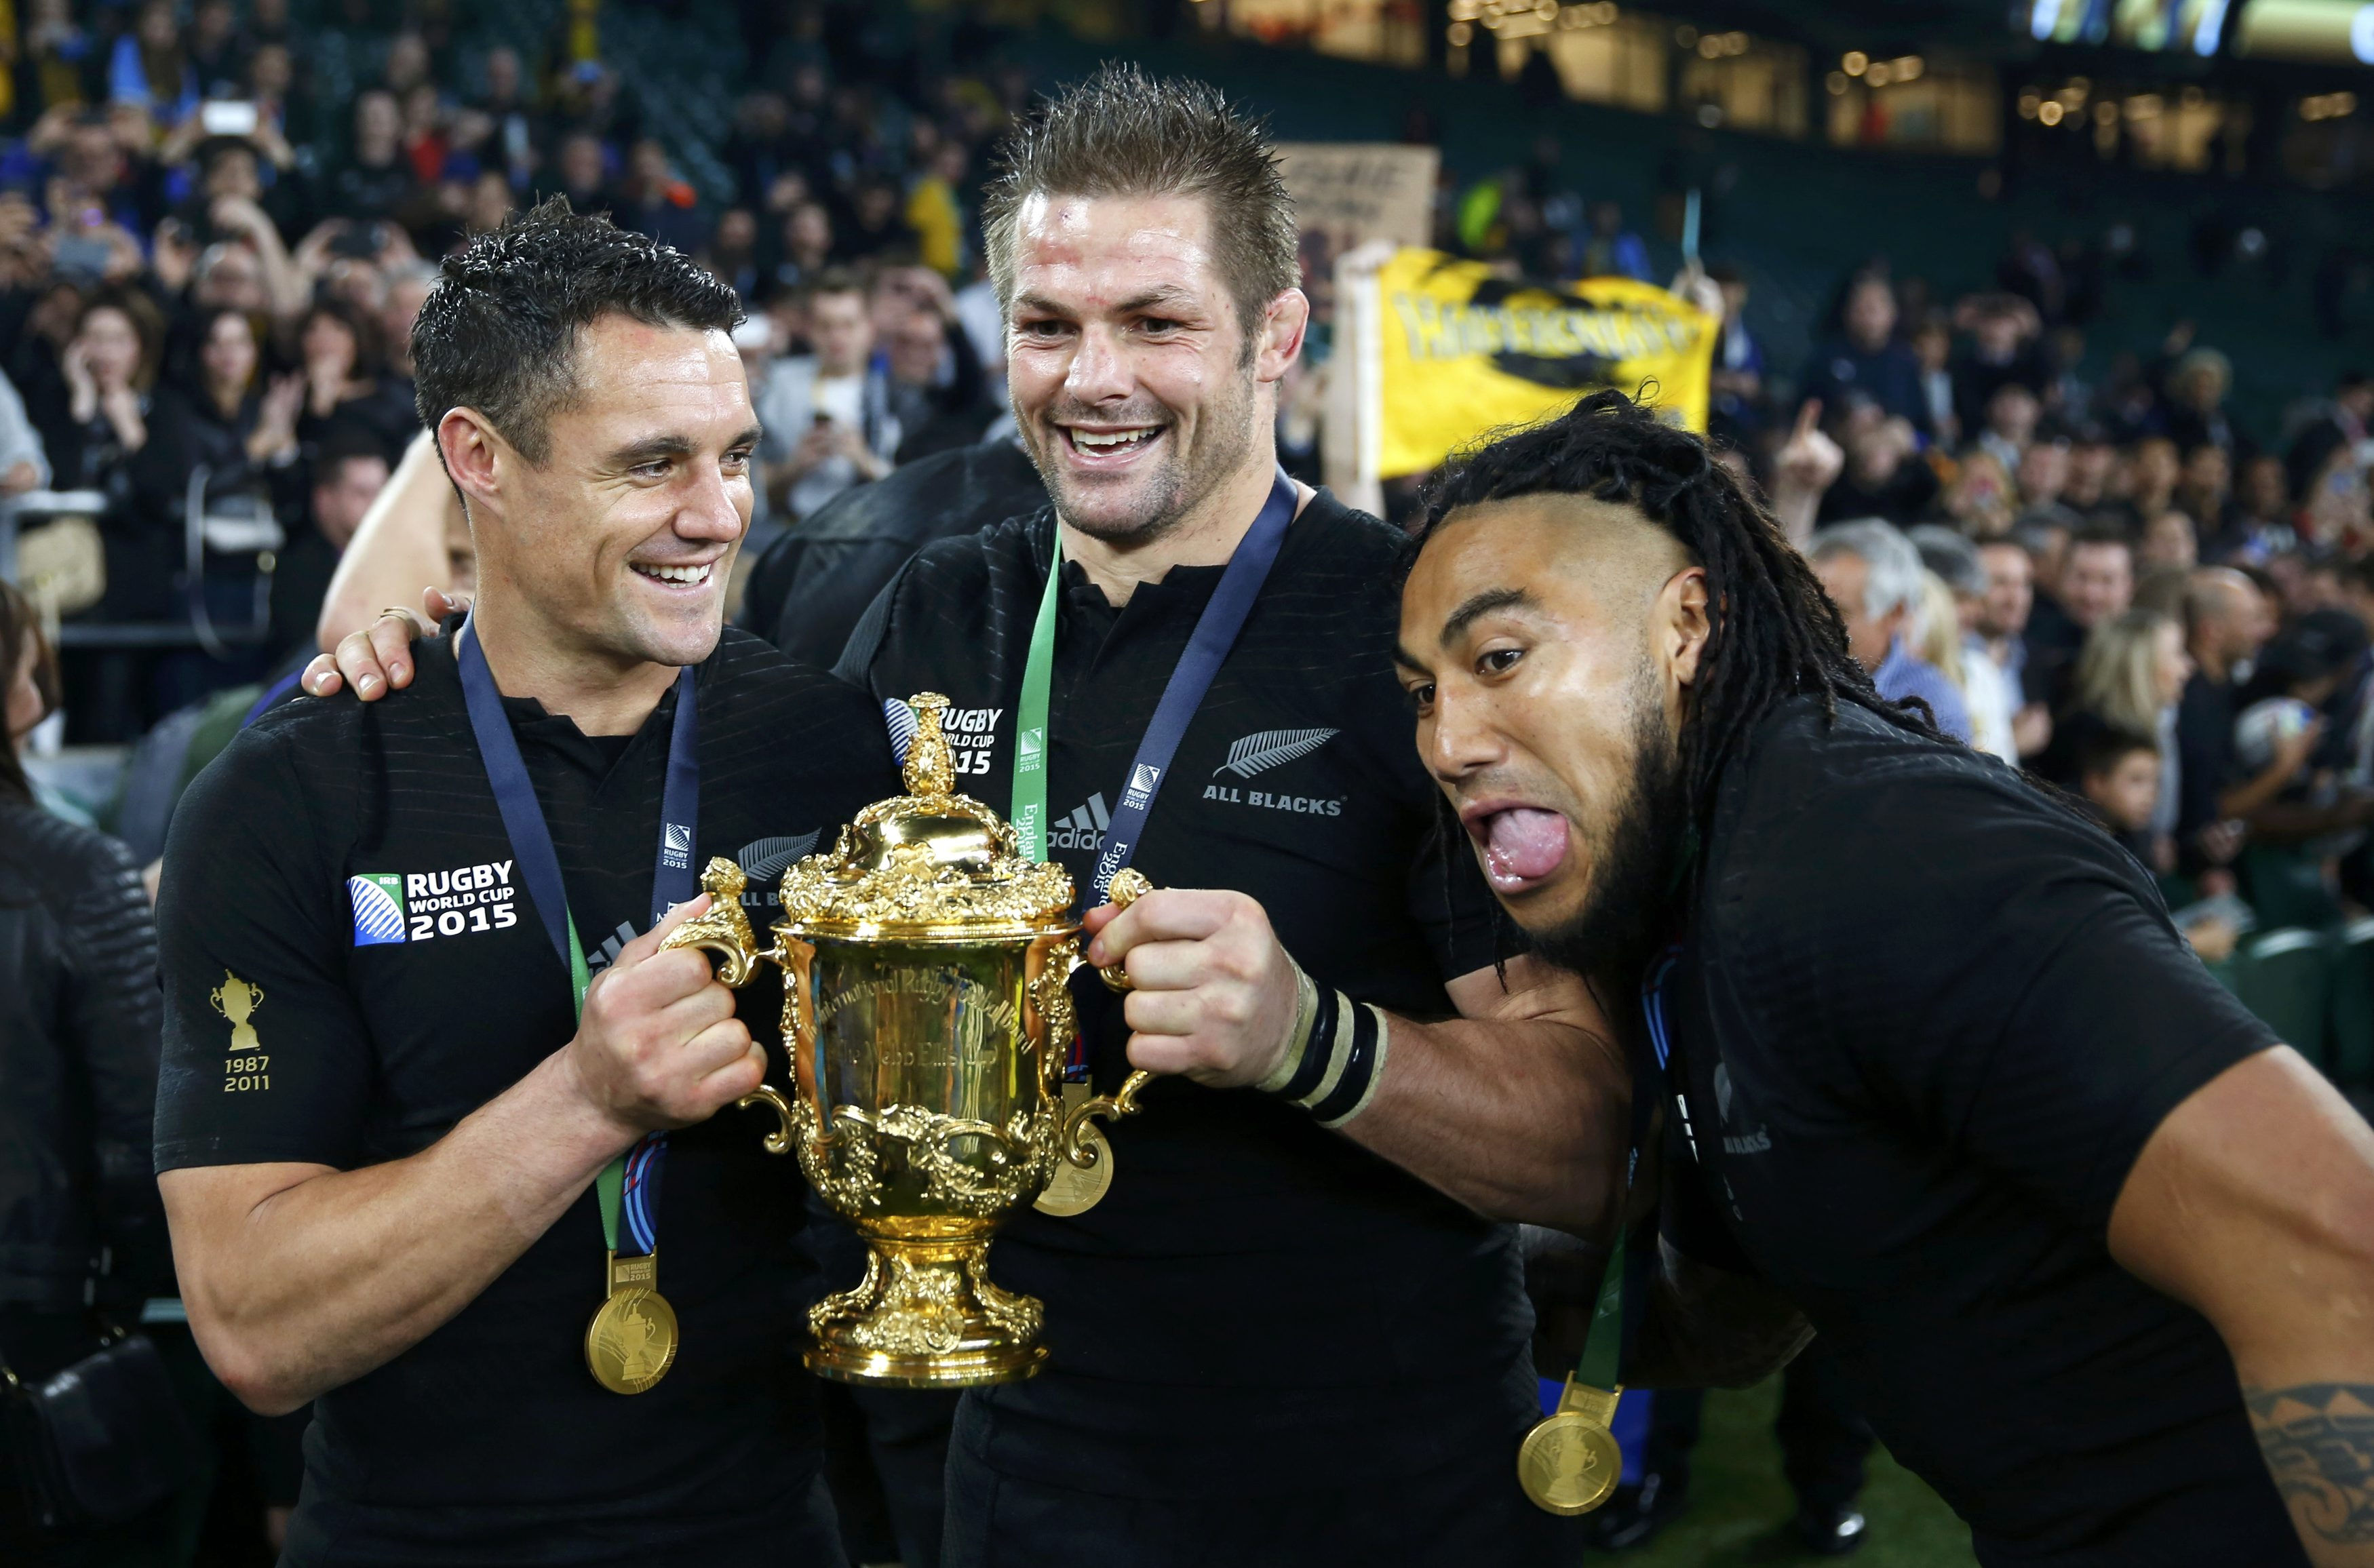 Rugby World Cup Most iconic trophies across different sports